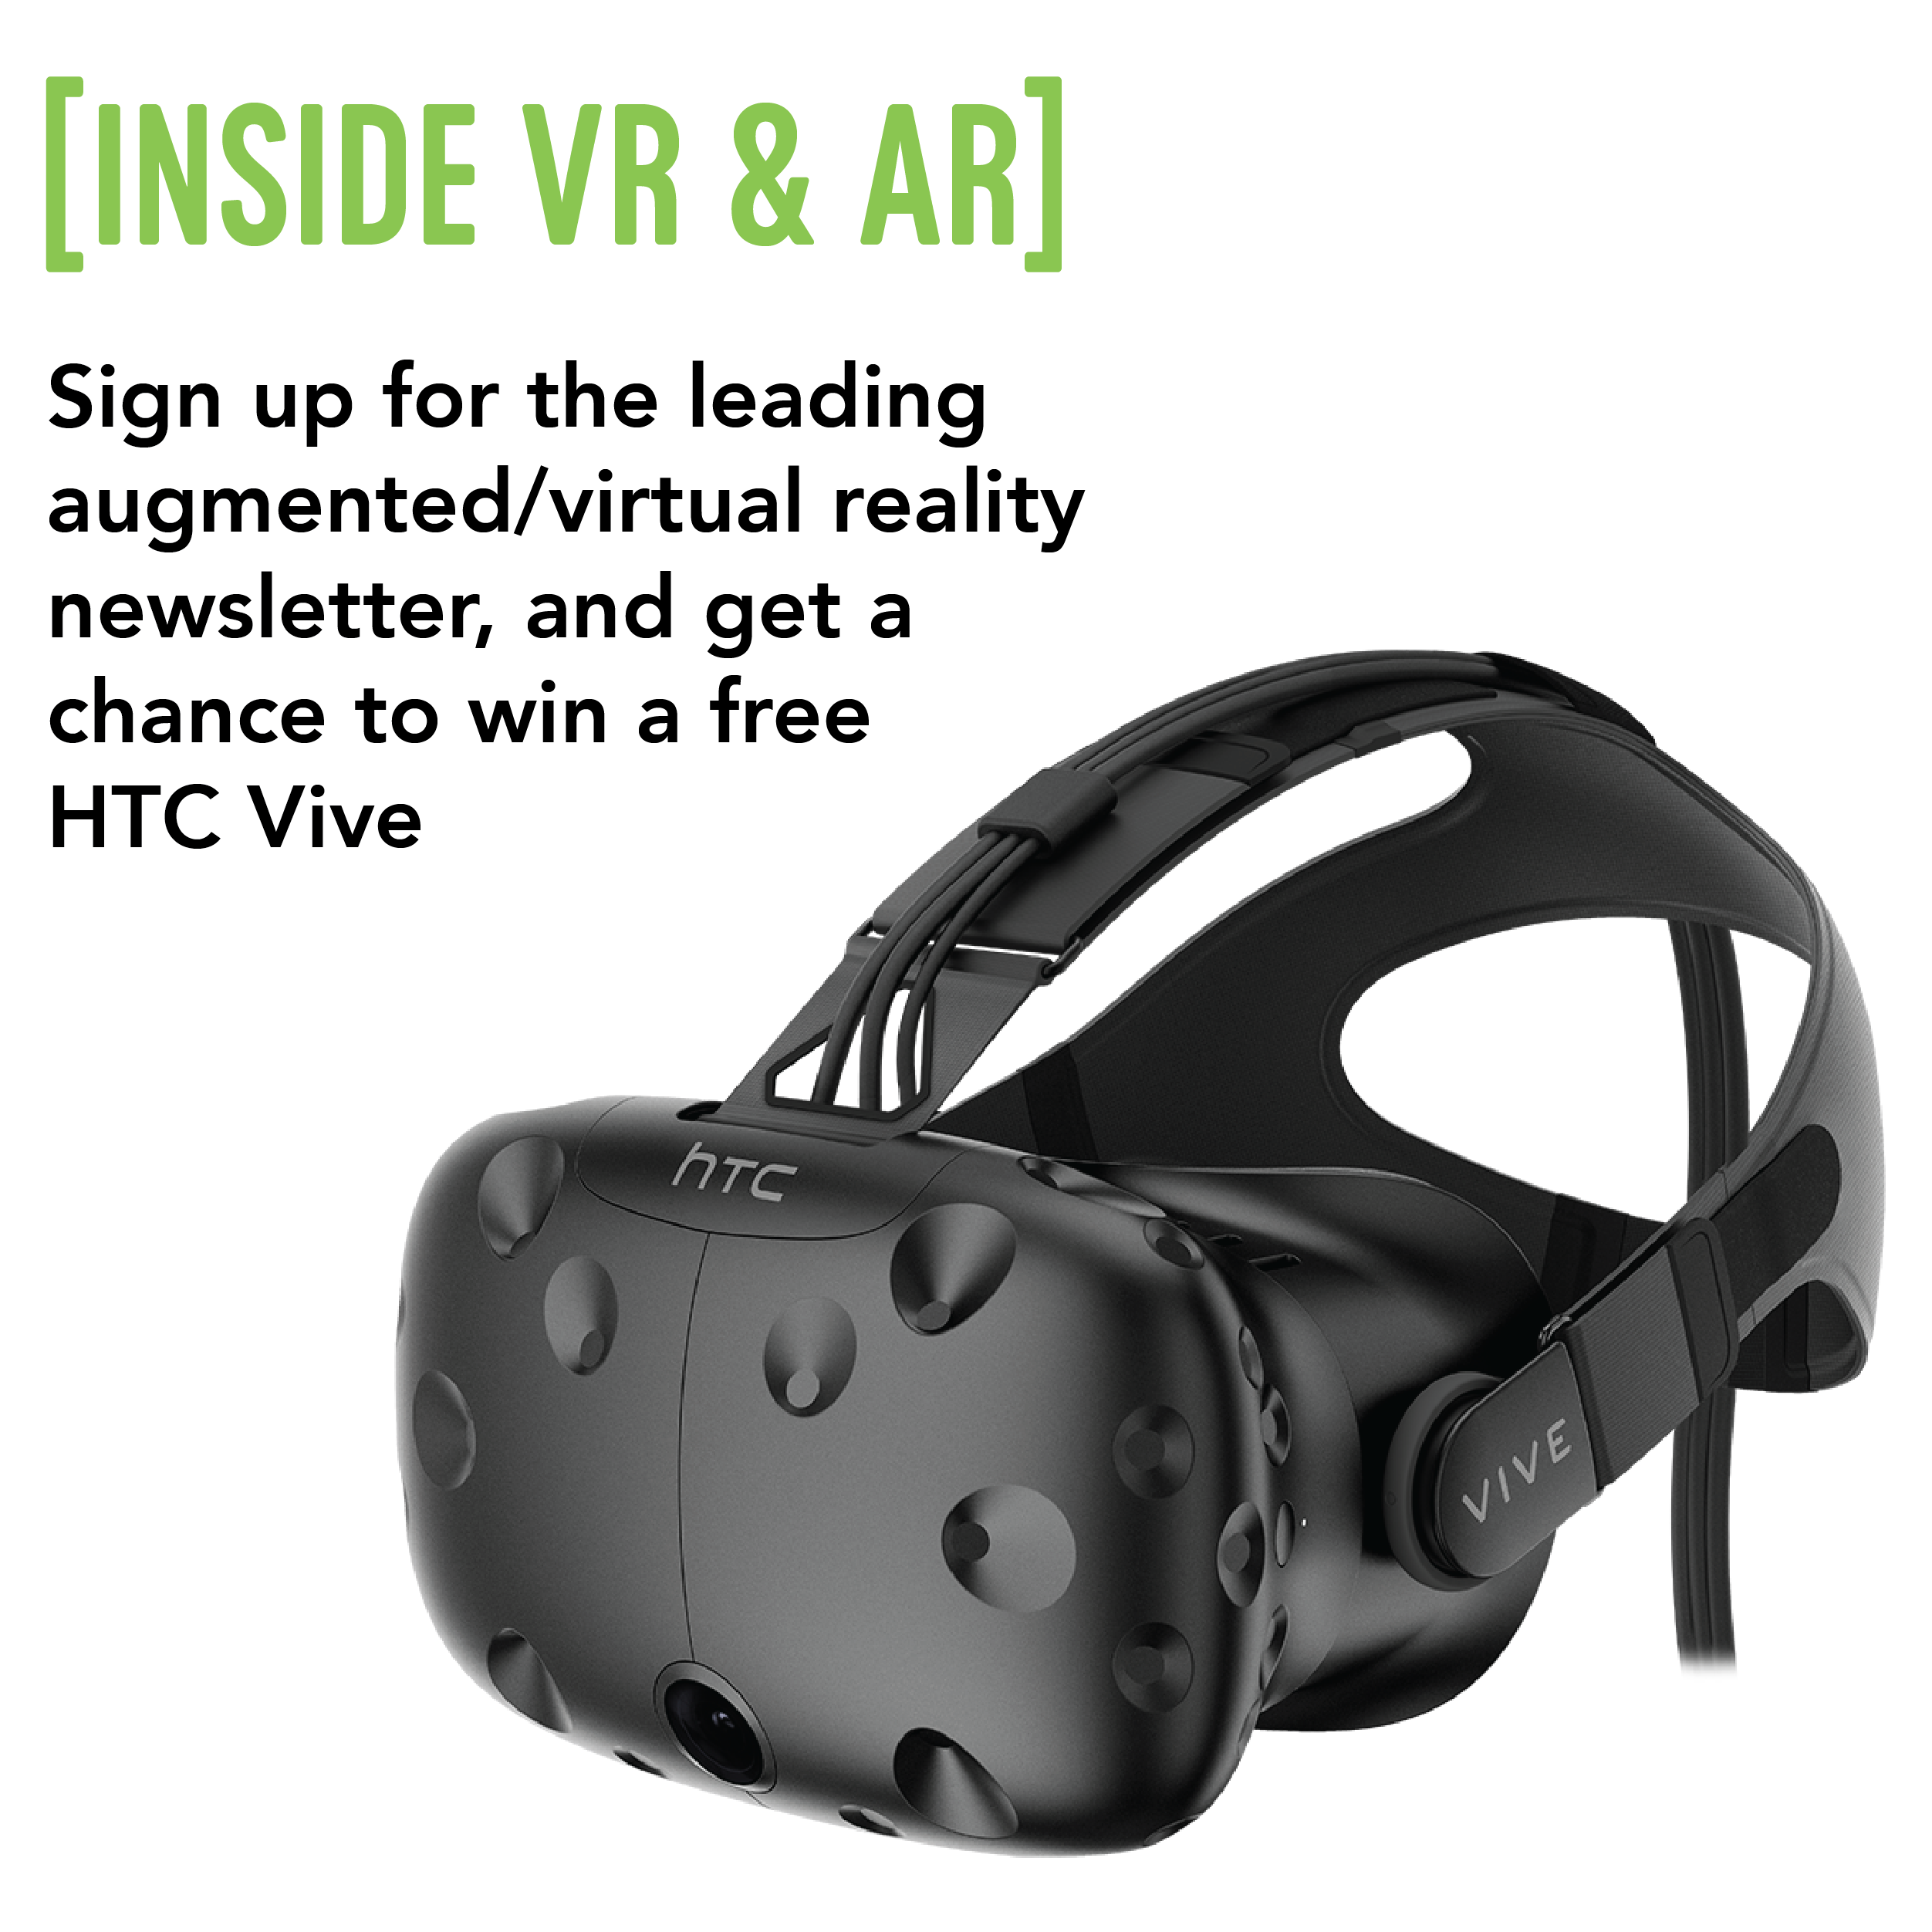 Get The Leading Vr Ar Newsletter And Win An Htc Vive Fun Sweepstakes Htc Vive Giveaway Contest